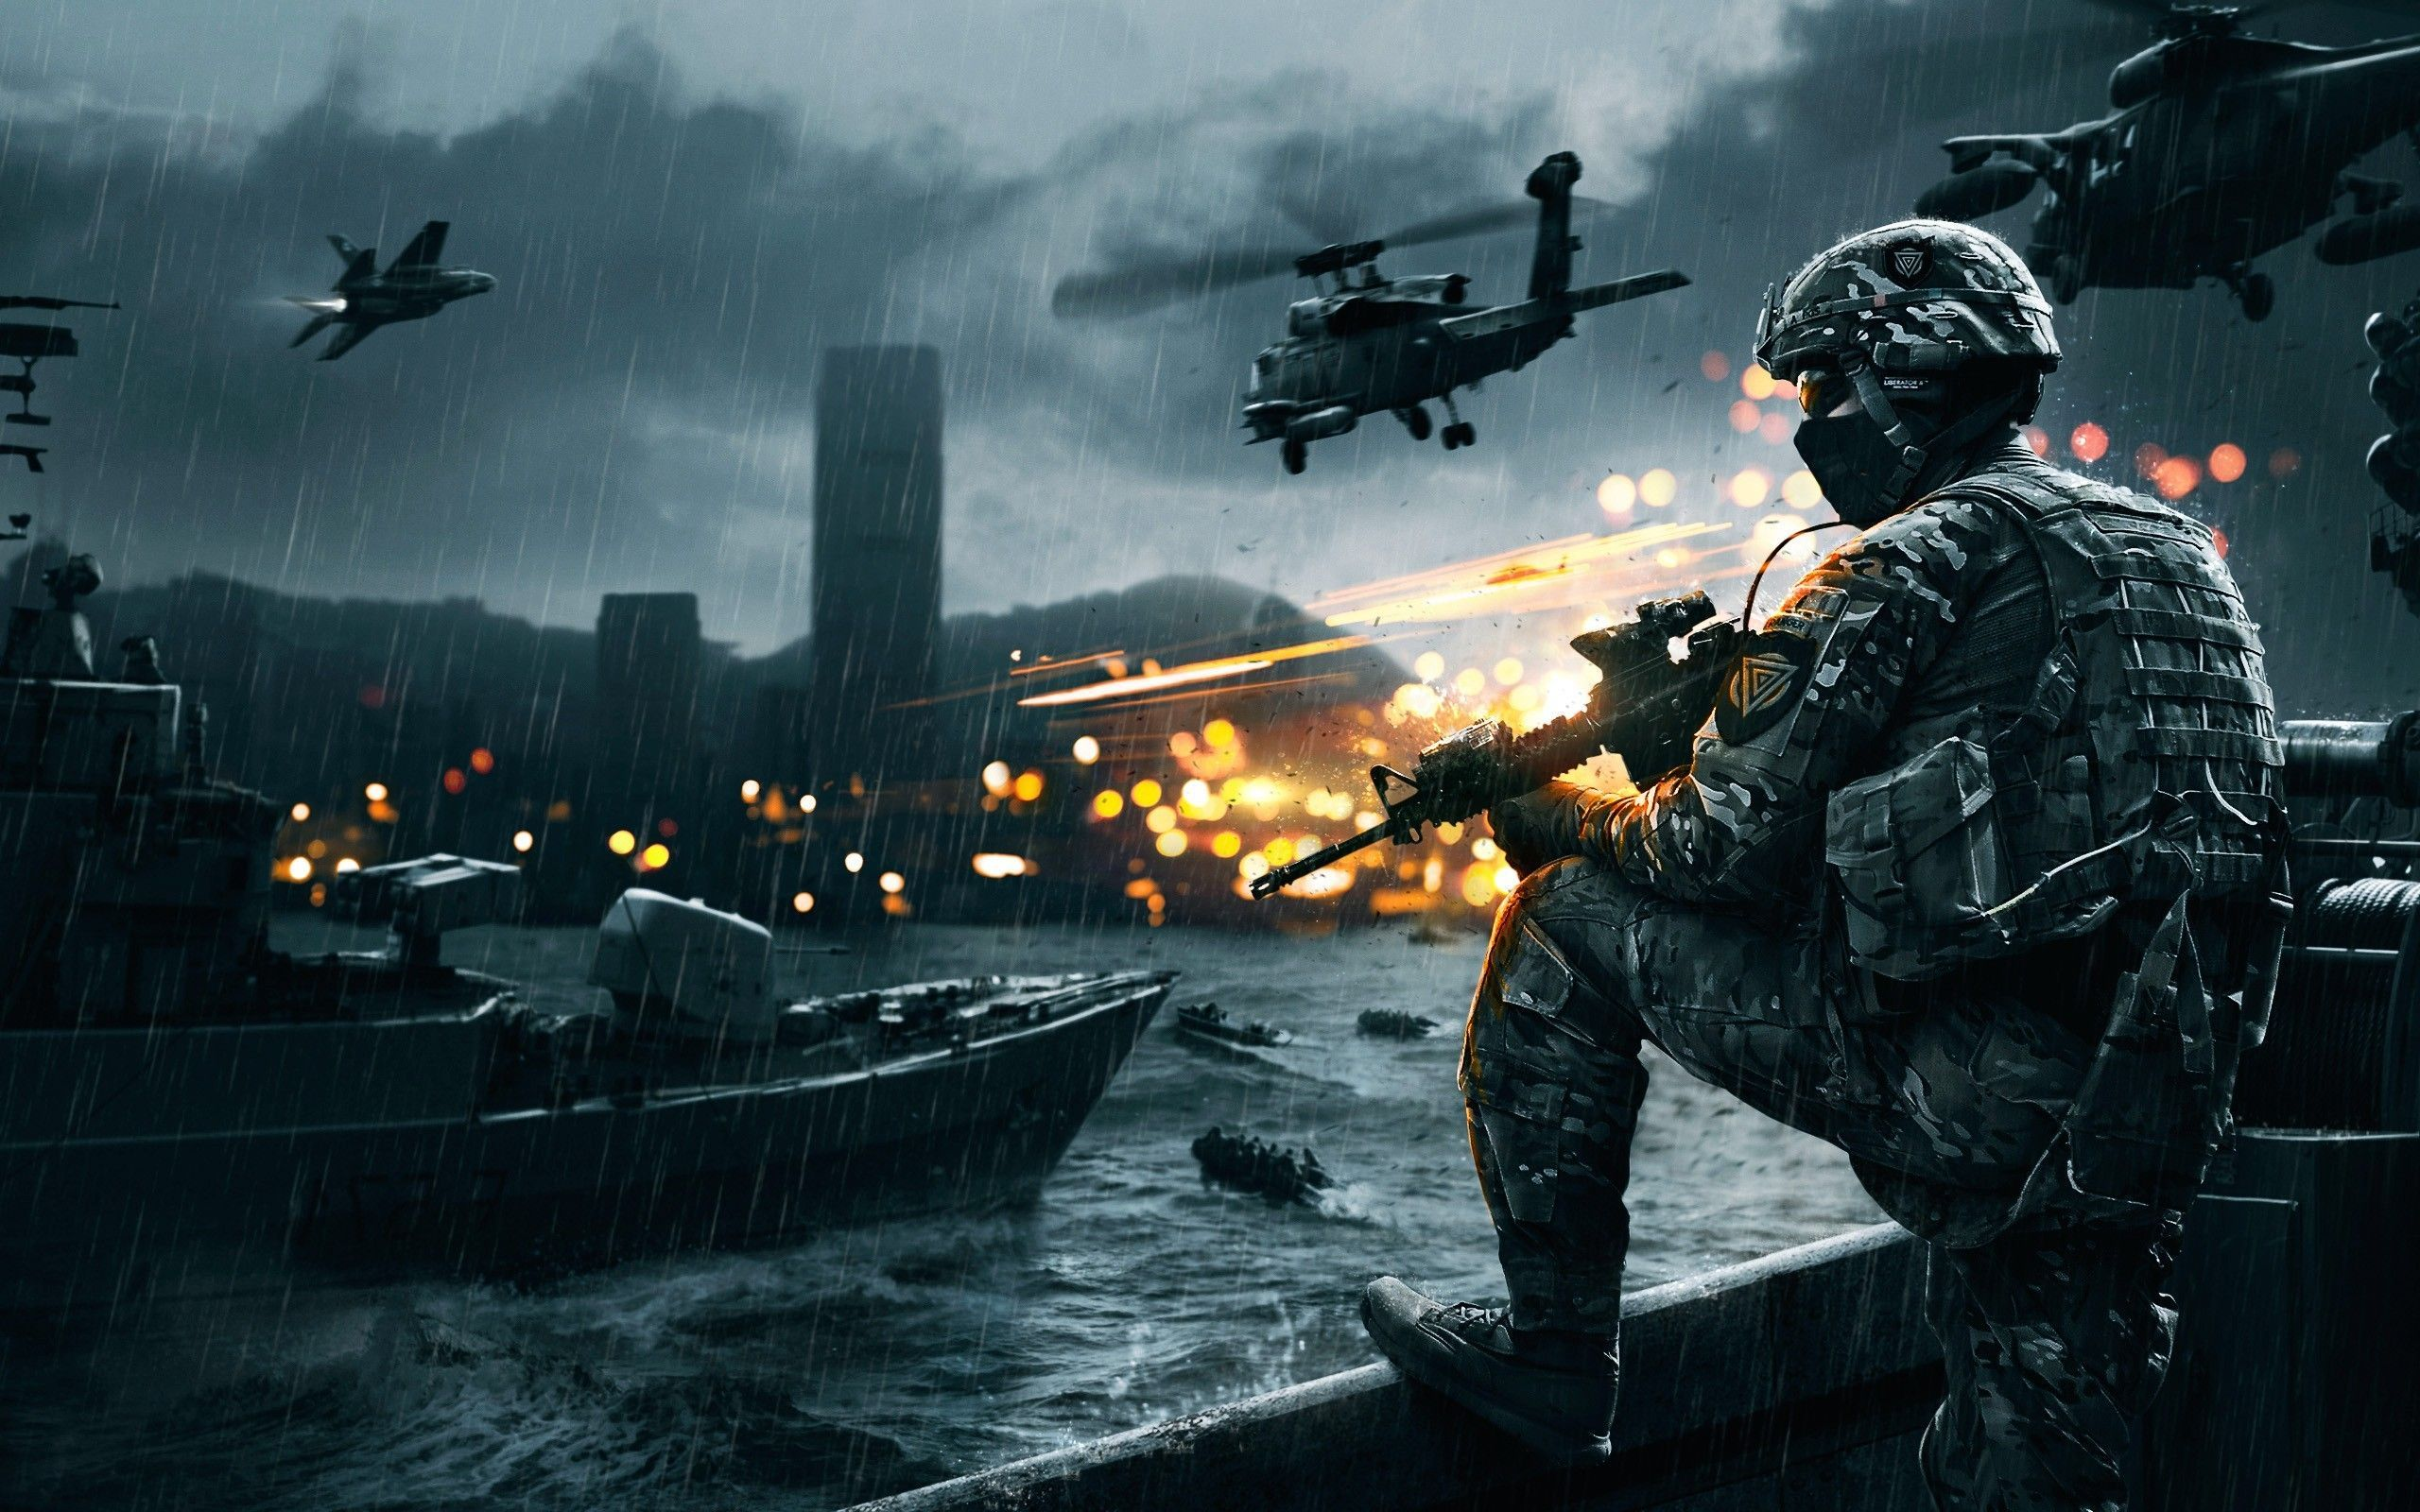 3d Military Wallpapers Top Free 3d Military Backgrounds Wallpaperaccess